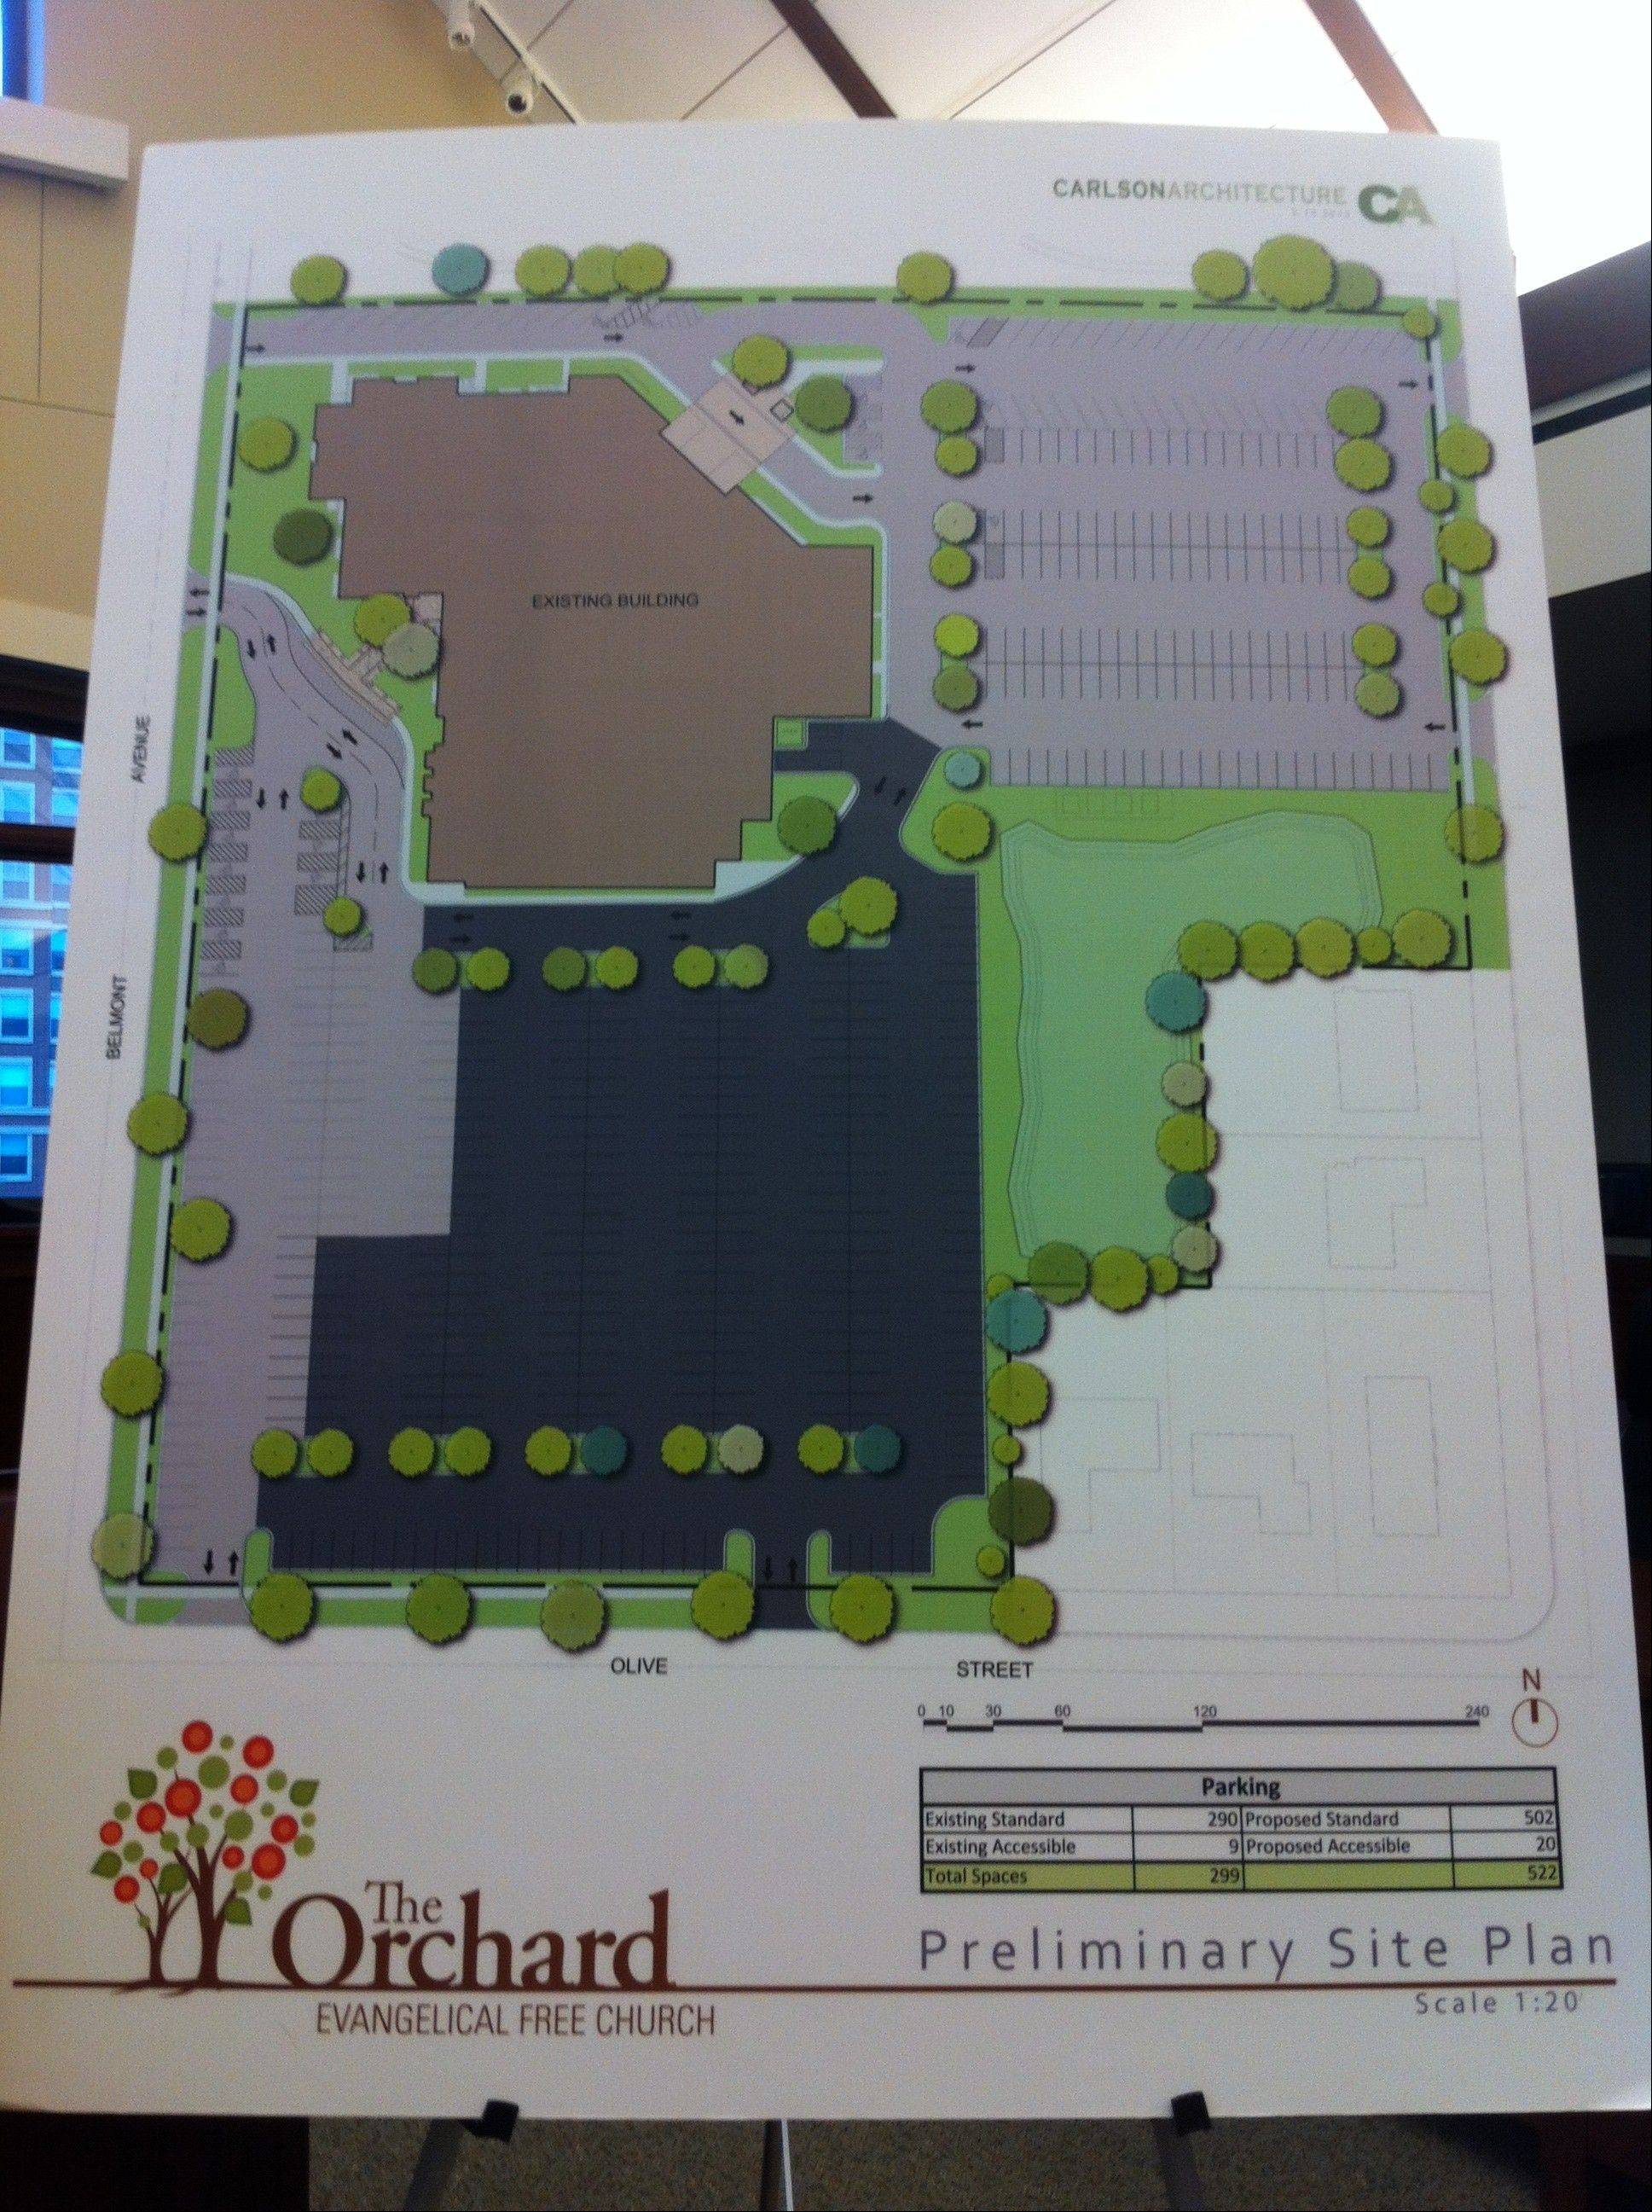 Proposed plan for Orchard Evangelical Free Church's expanded parking lot. The expansion is shaded in a darker color.